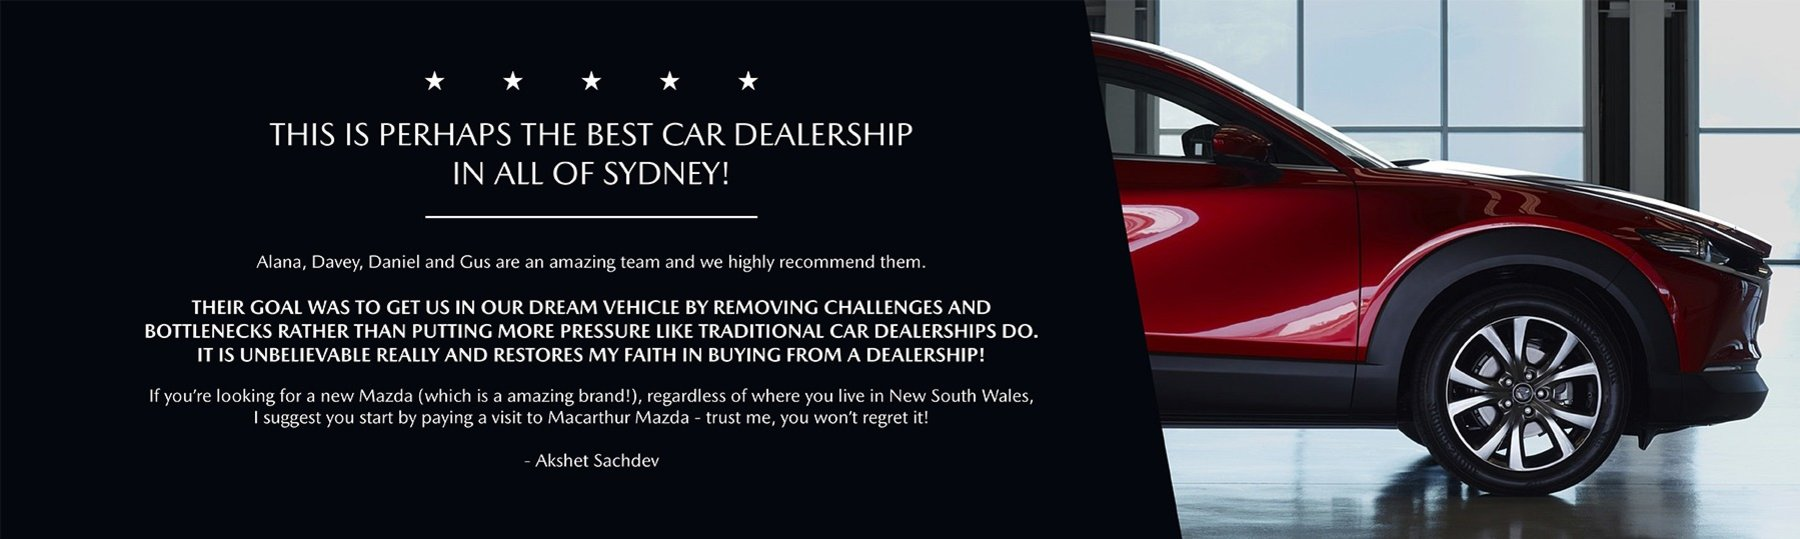 Testimonial- This is perhaps the best car dealership in all of Sydney!